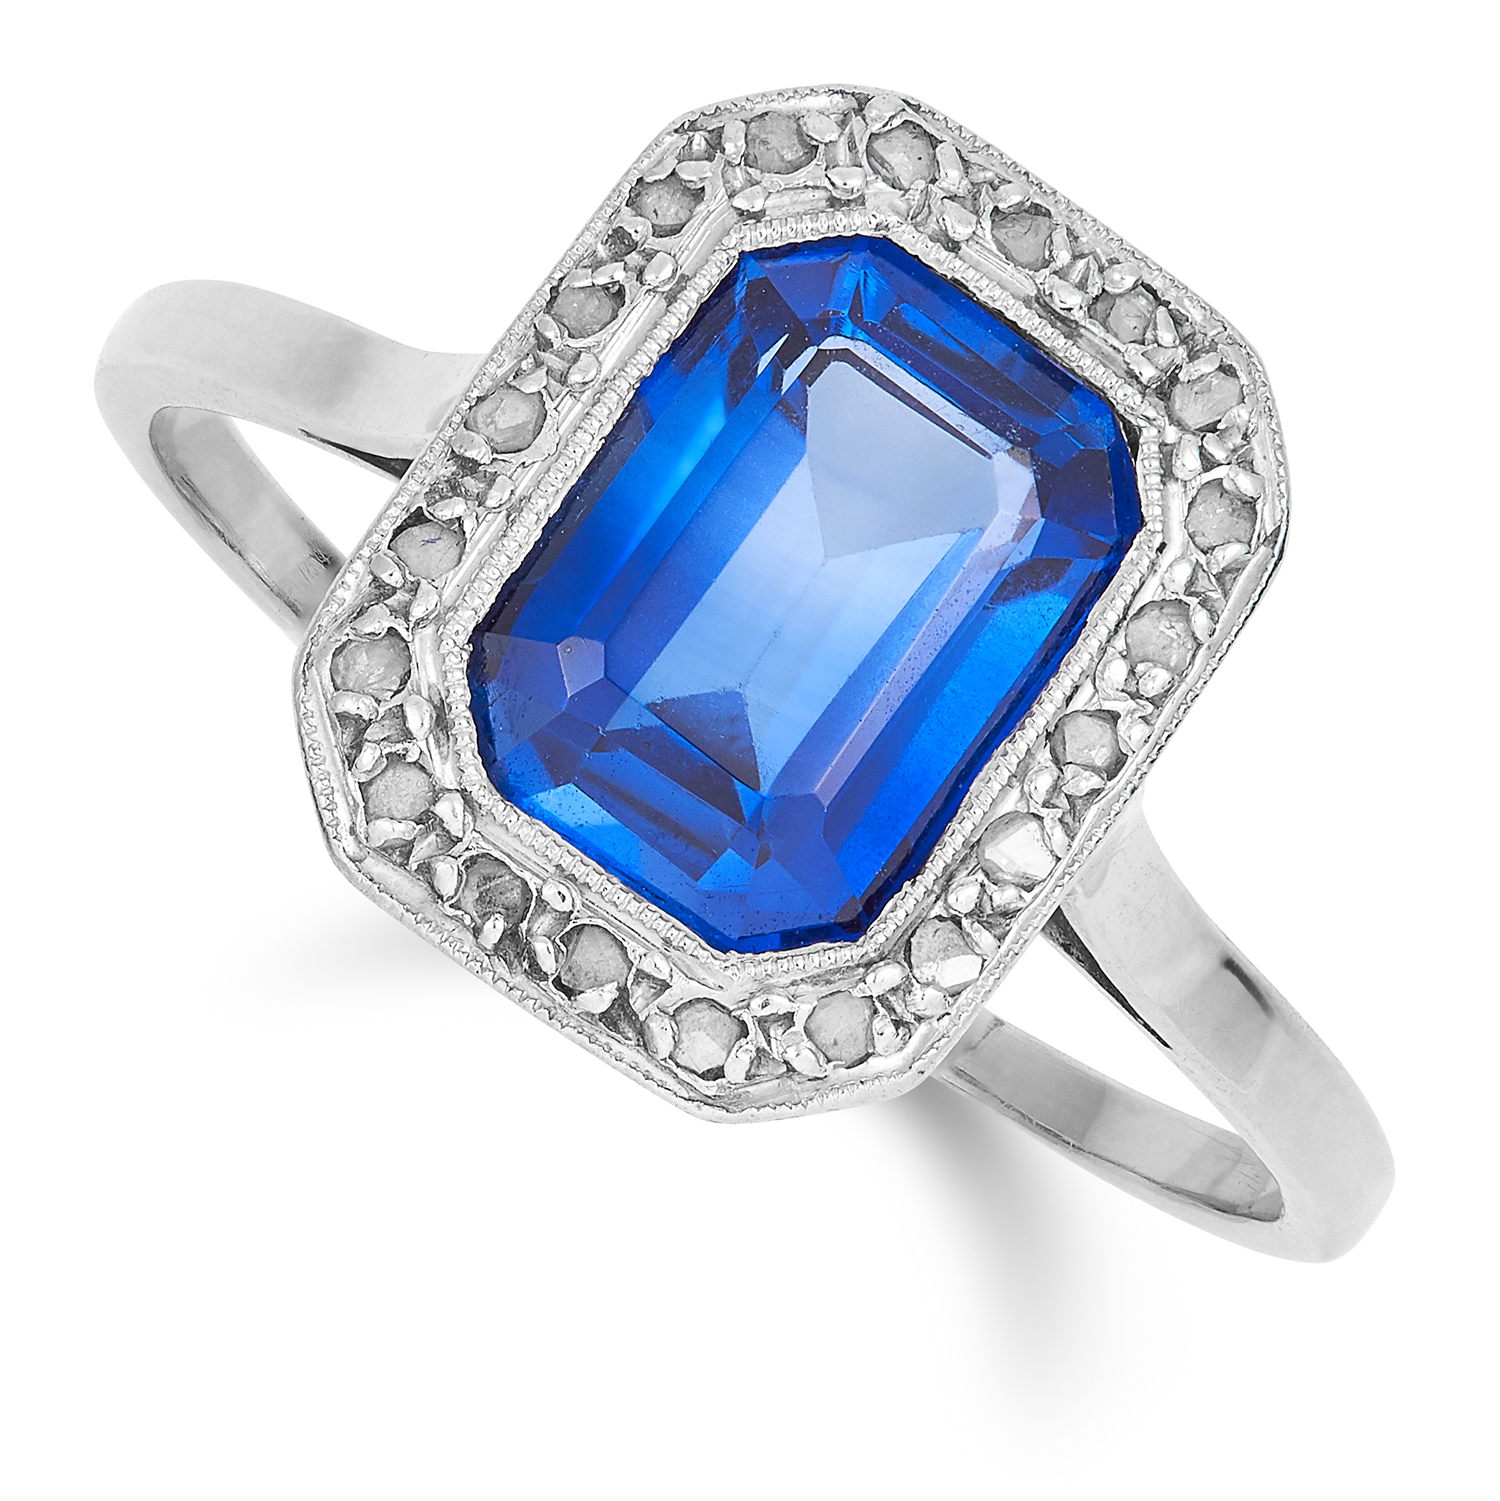 ANTIQUE SYNTHETIC SAPPHIRE AND DIAMOND RING set with an emerald cut synthetic sapphire and rose